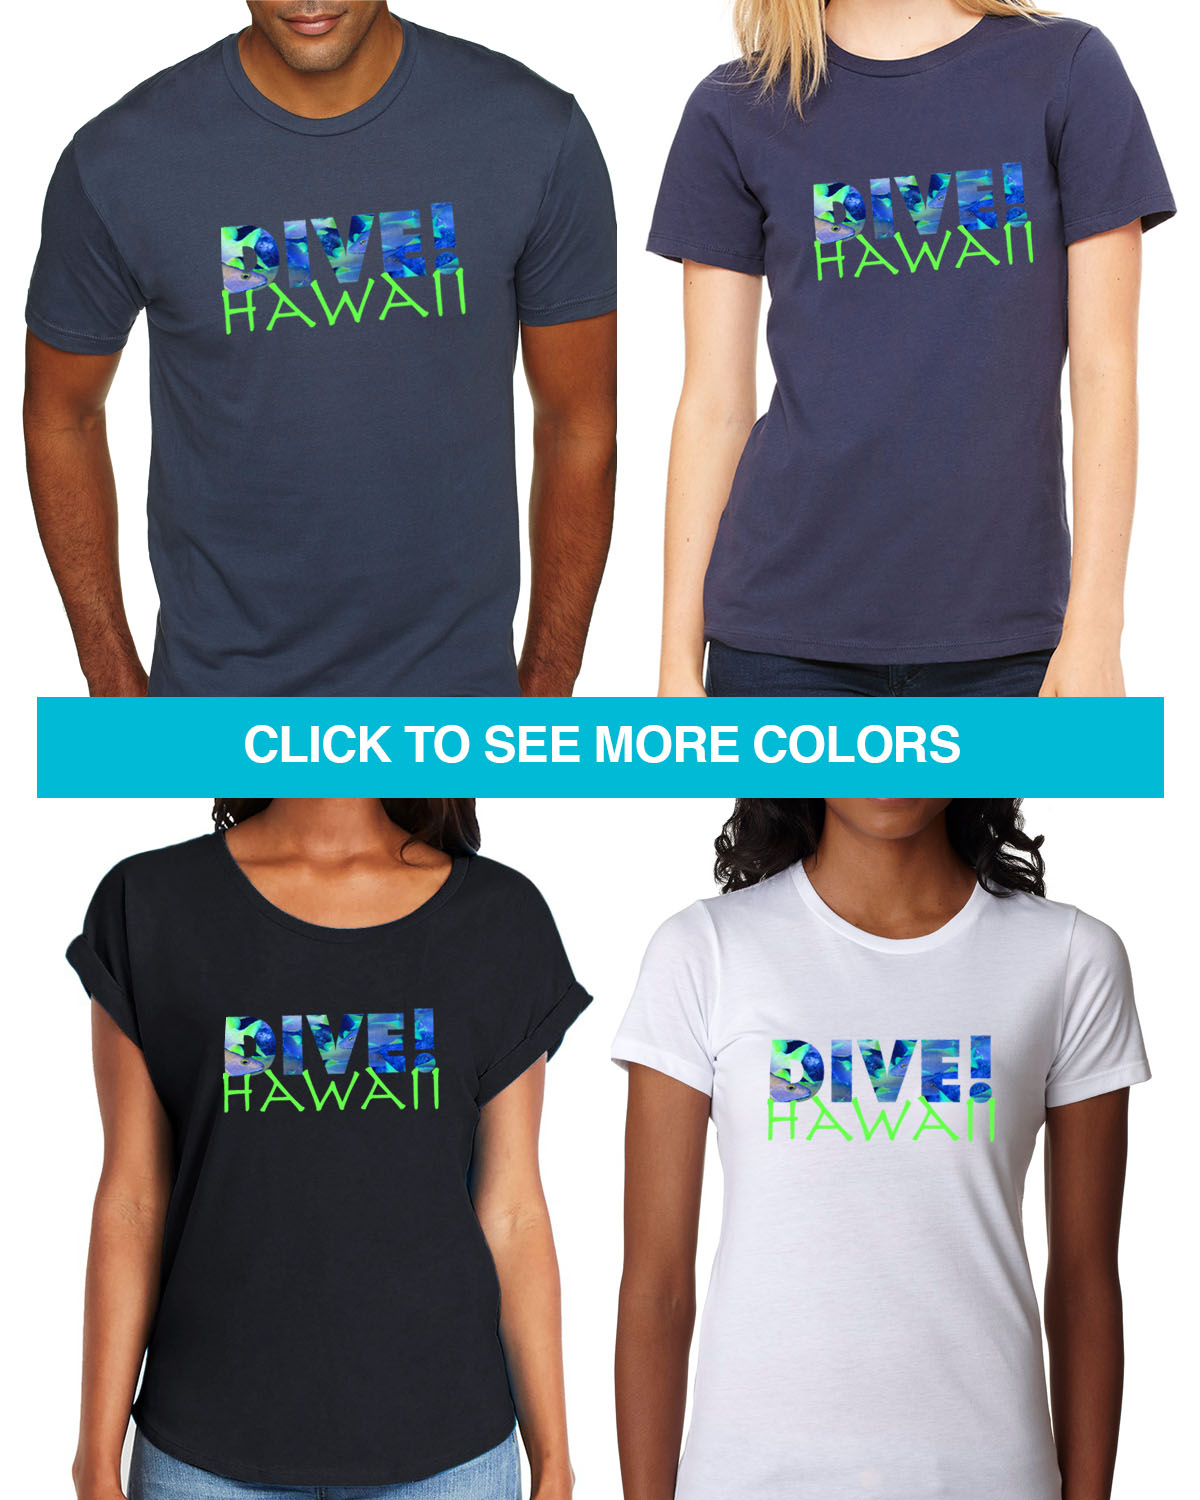 DIVE Hawaii Tees for Men & Women